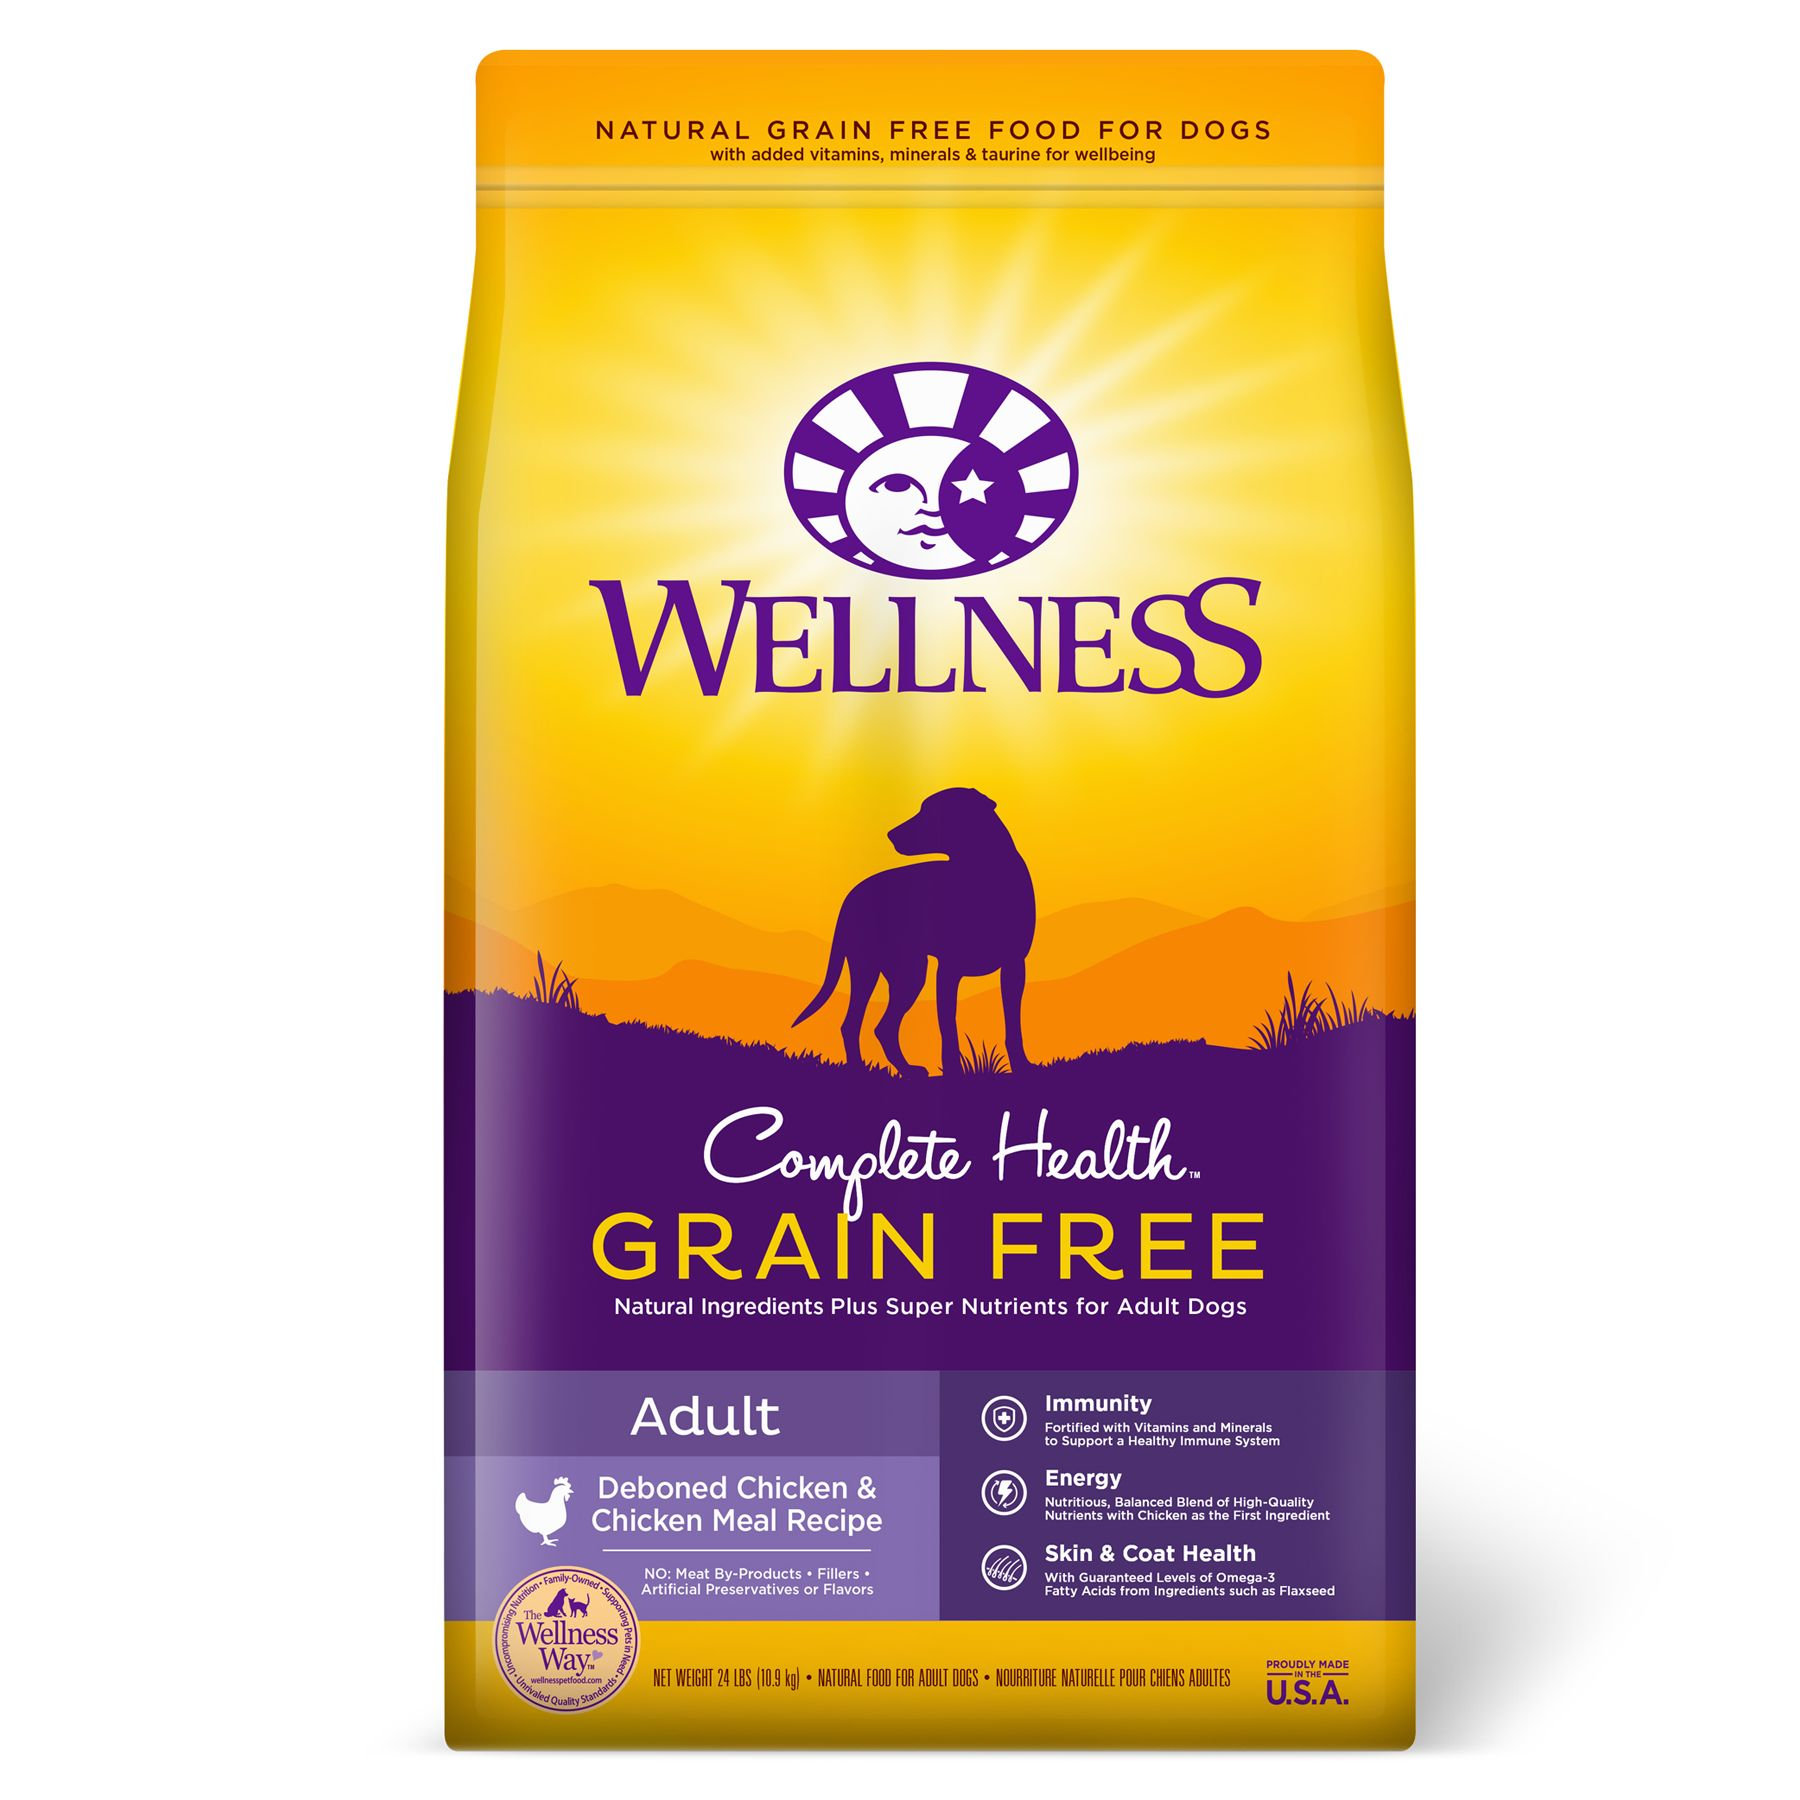 Wellnessreg Complete Health Grain Free Adult Dog Food  Natural Chicken and Chicken Meal size 24 Lb